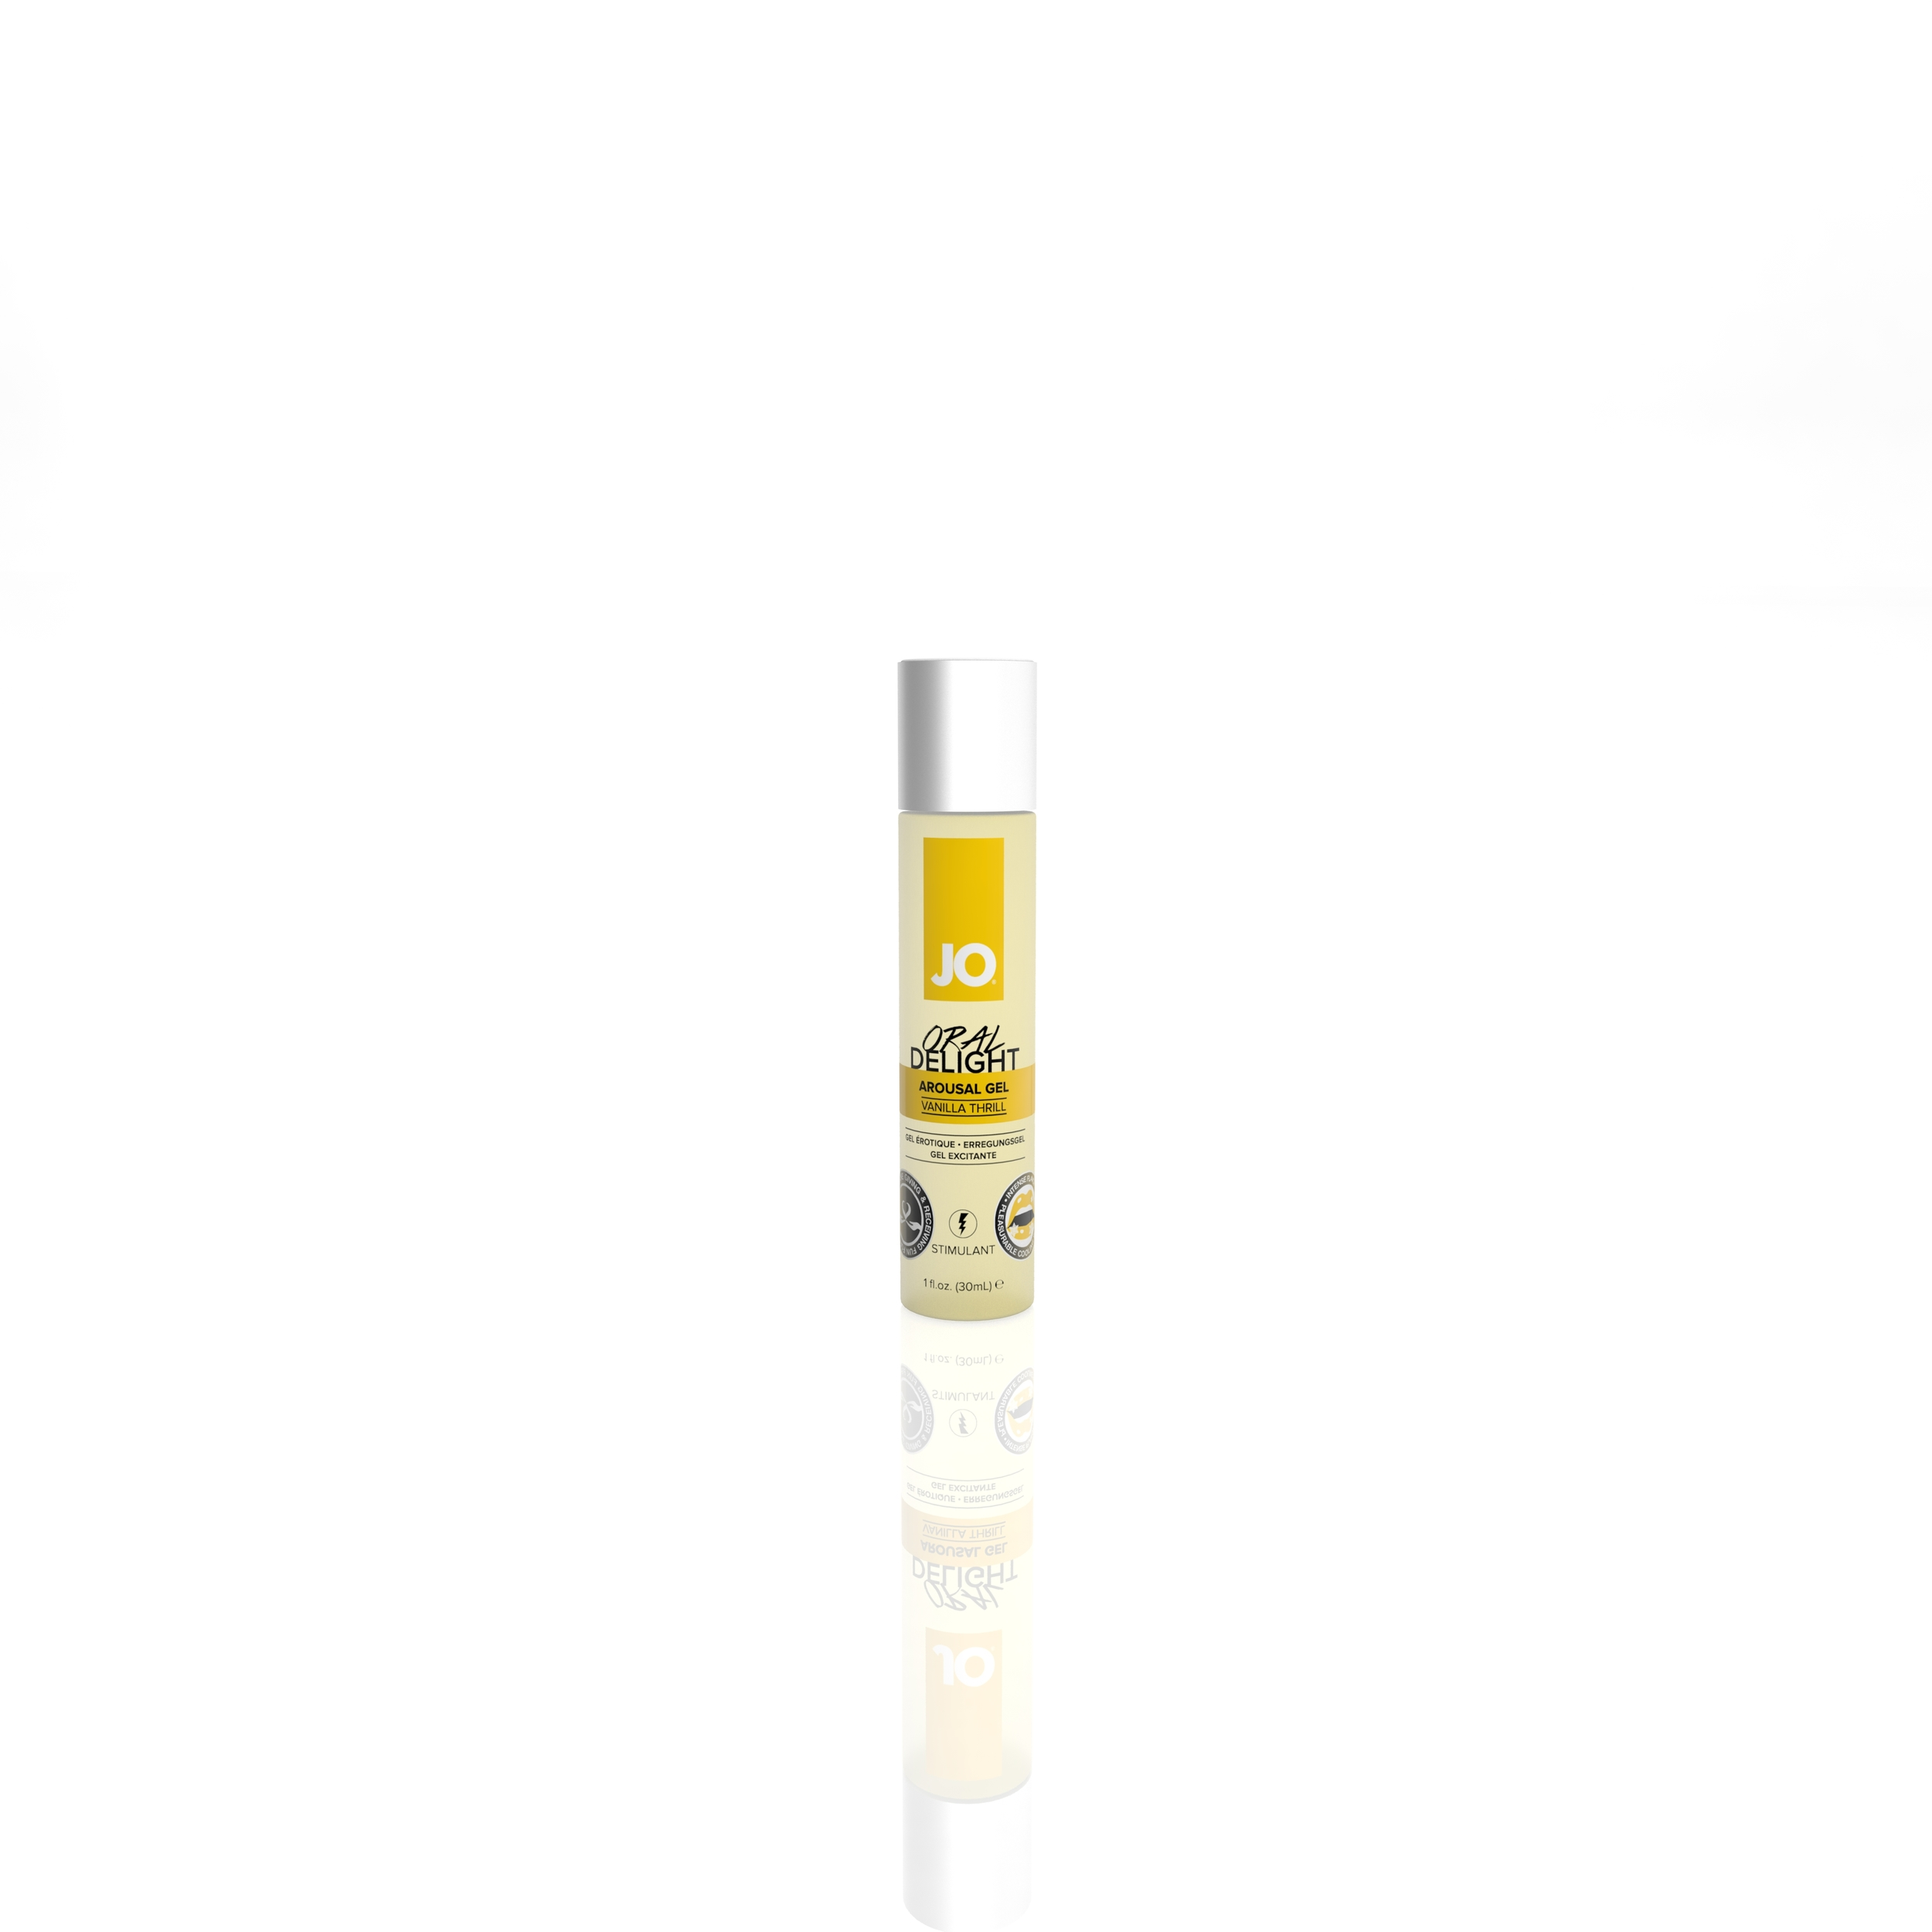 40480 - JO ORAL DELIGHT - VANILLA THRILL - 1fl.oz 30mL Bottle.jpg